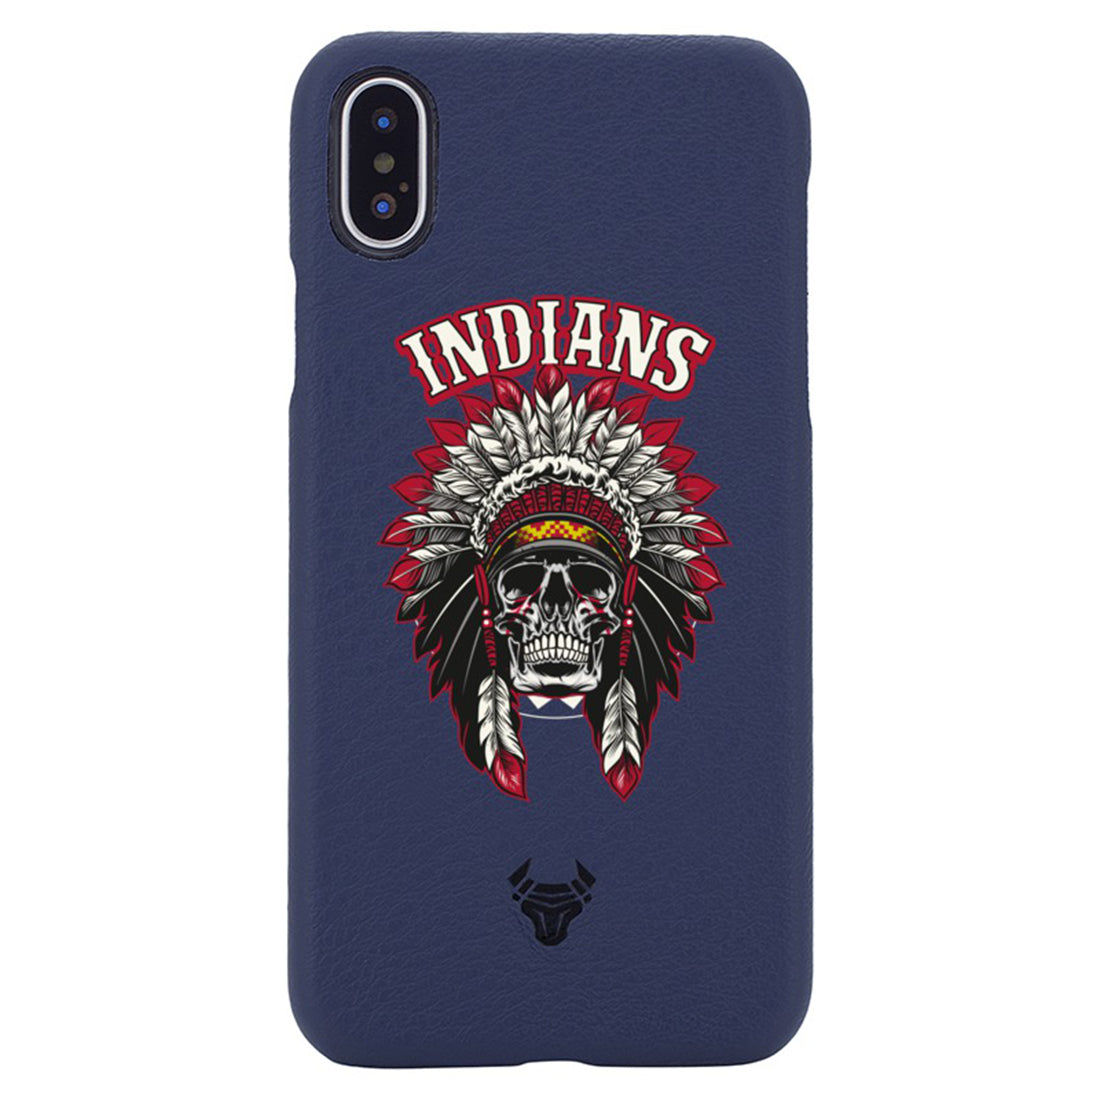 Indian-Tribal_Midnight-Blue-iPhone-X-1.jpg